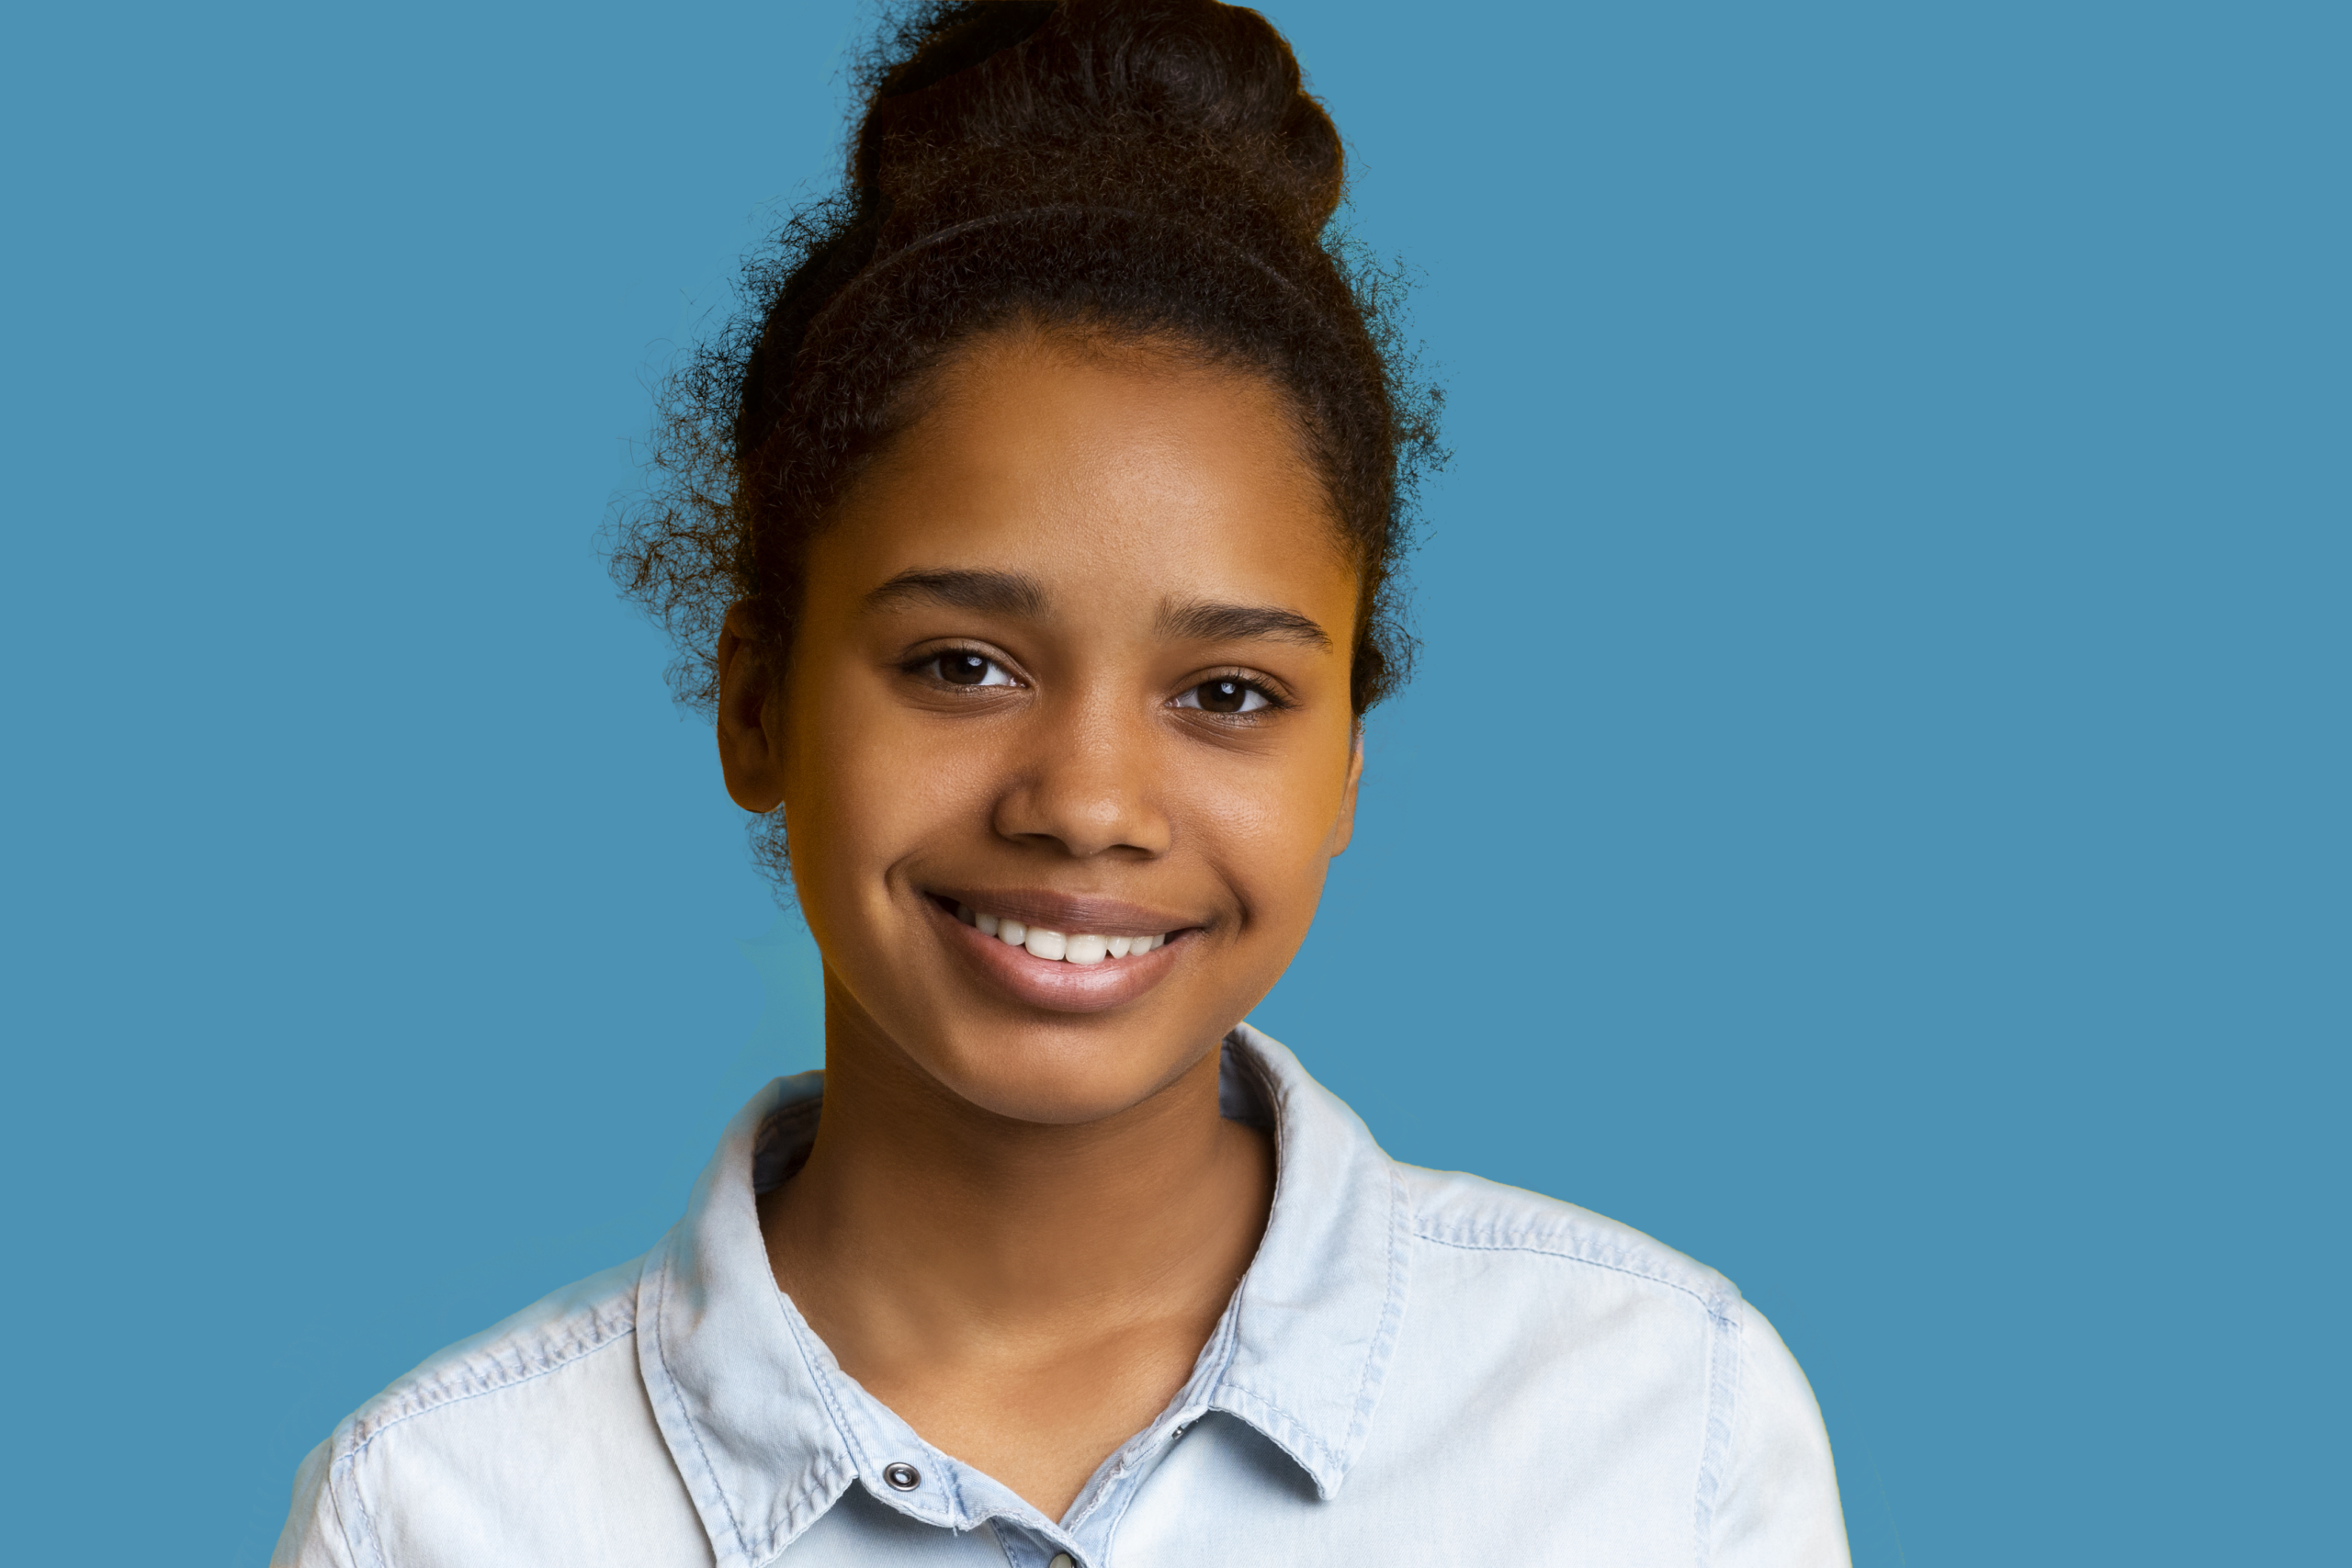 Invisalign for Teens: A New Popular Alternative to Traditional Braces